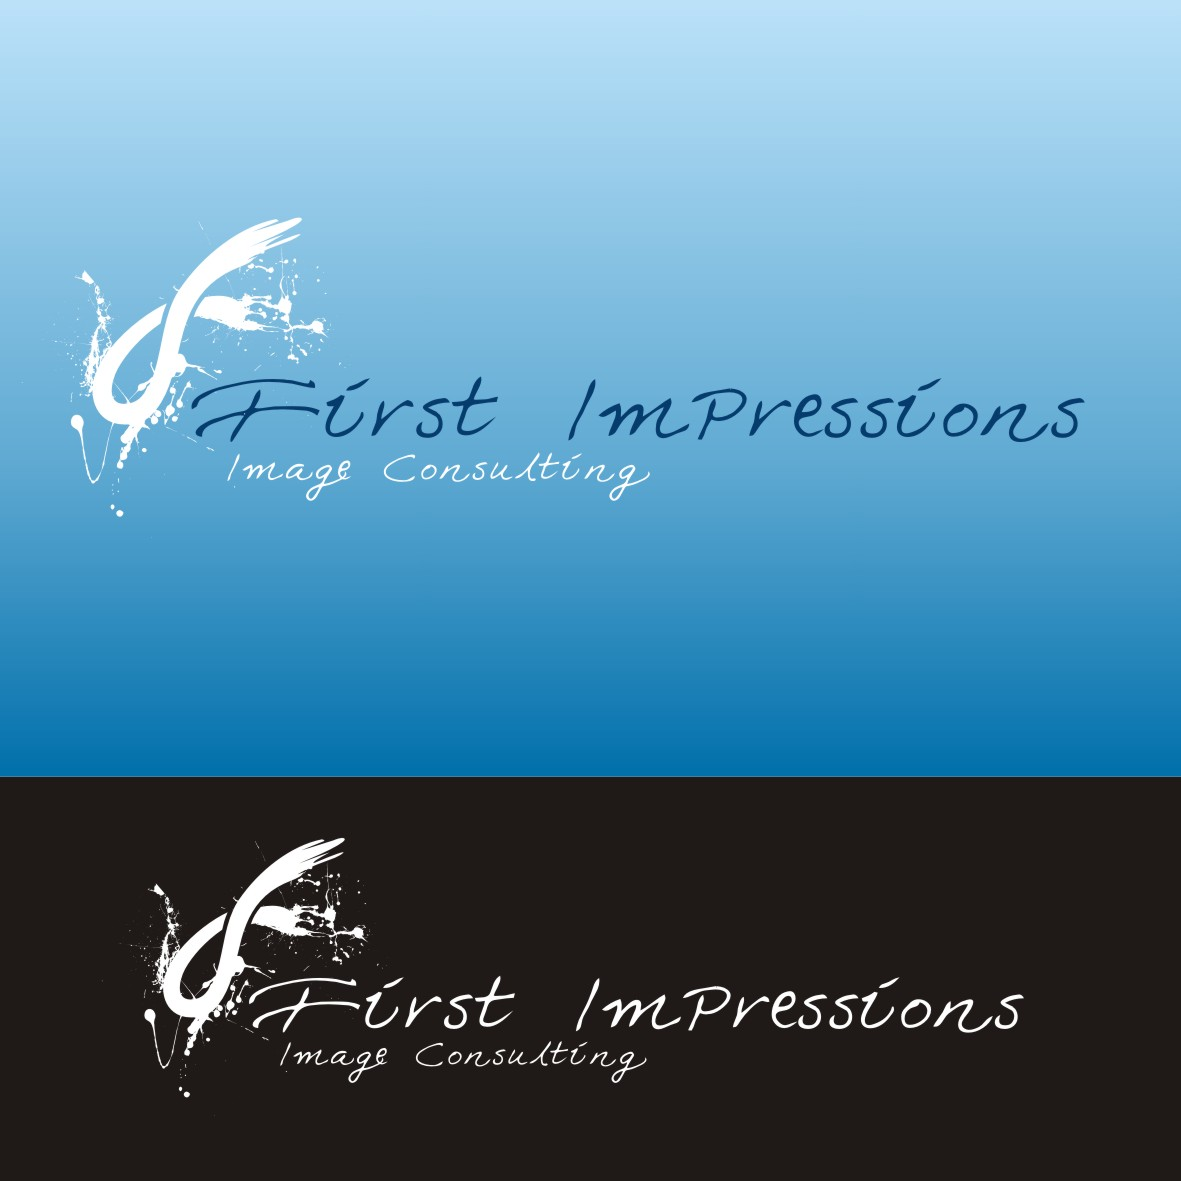 Logo Design by arteo_design - Entry No. 220 in the Logo Design Contest First Impressions Image Consulting Logo Design.